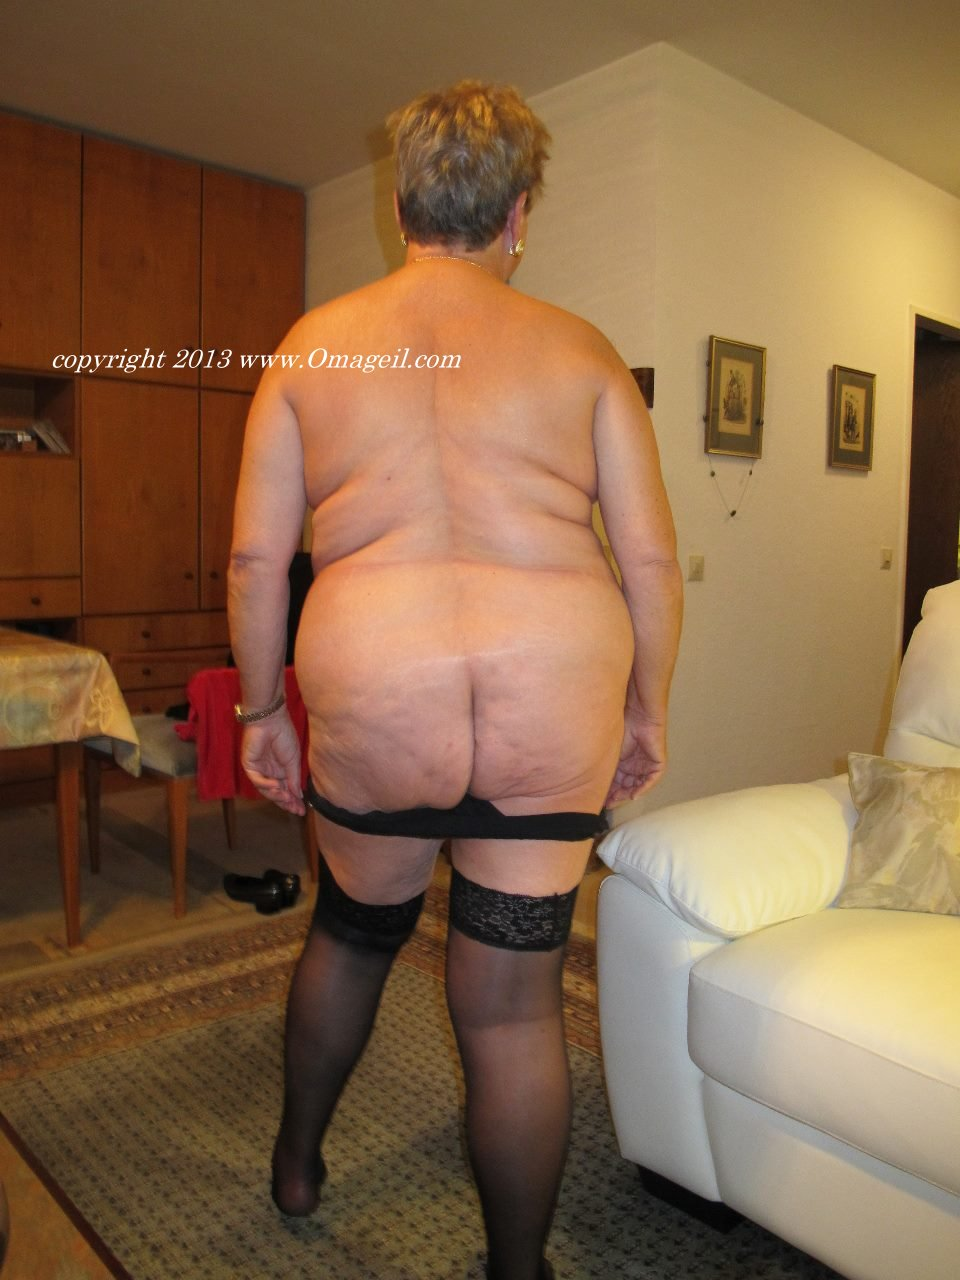 Hot Granny Porn Pictures And Vids - Free Granny And Mature -5004